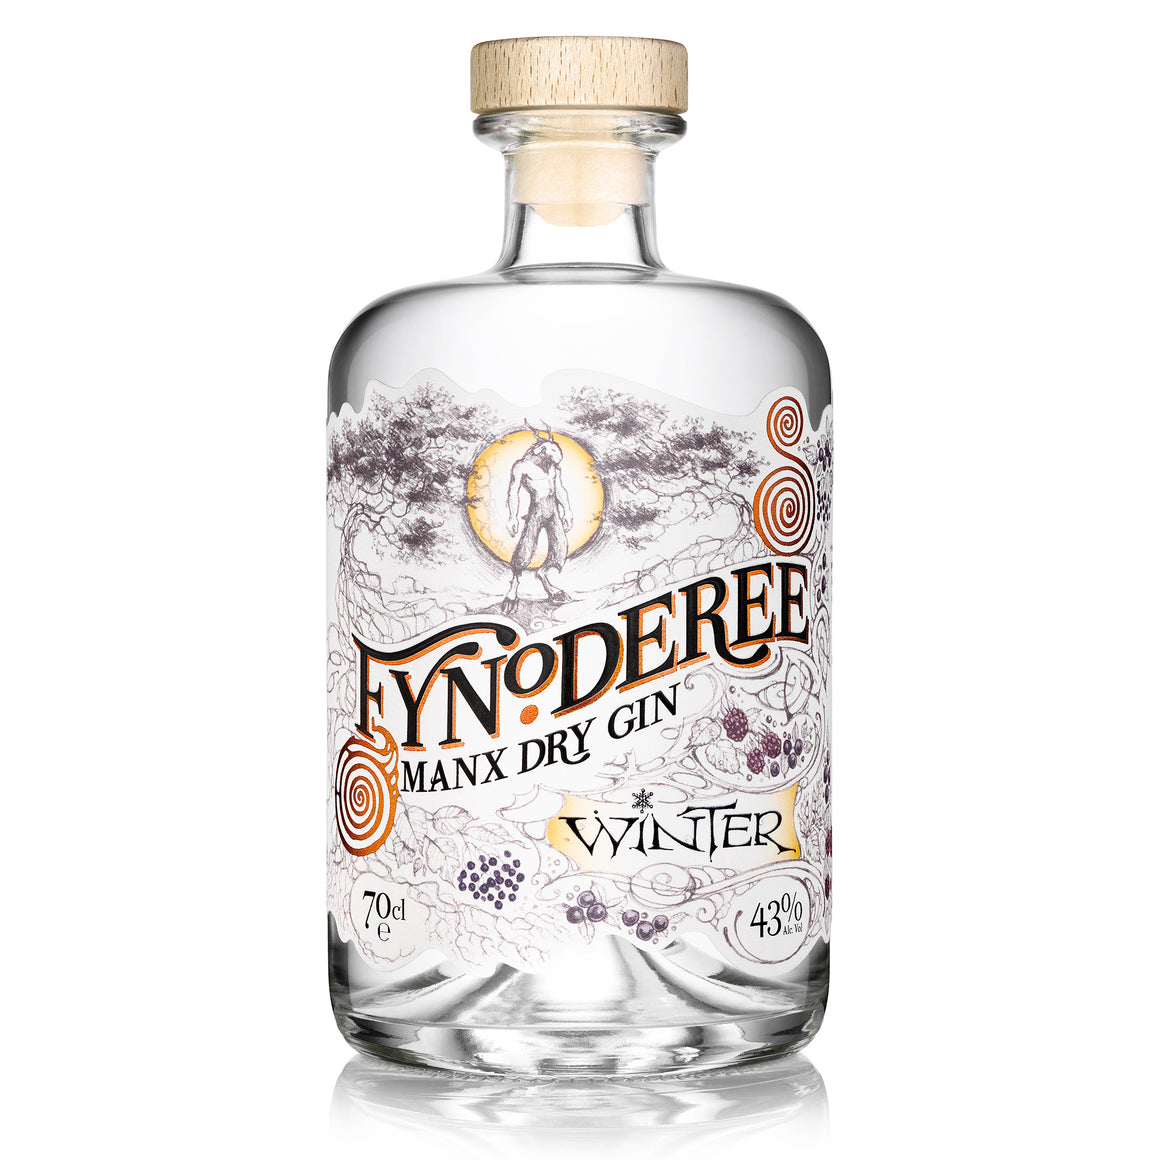 CURRENT SEASON - Fynoderee Manx Dry Gin - Winter Edition